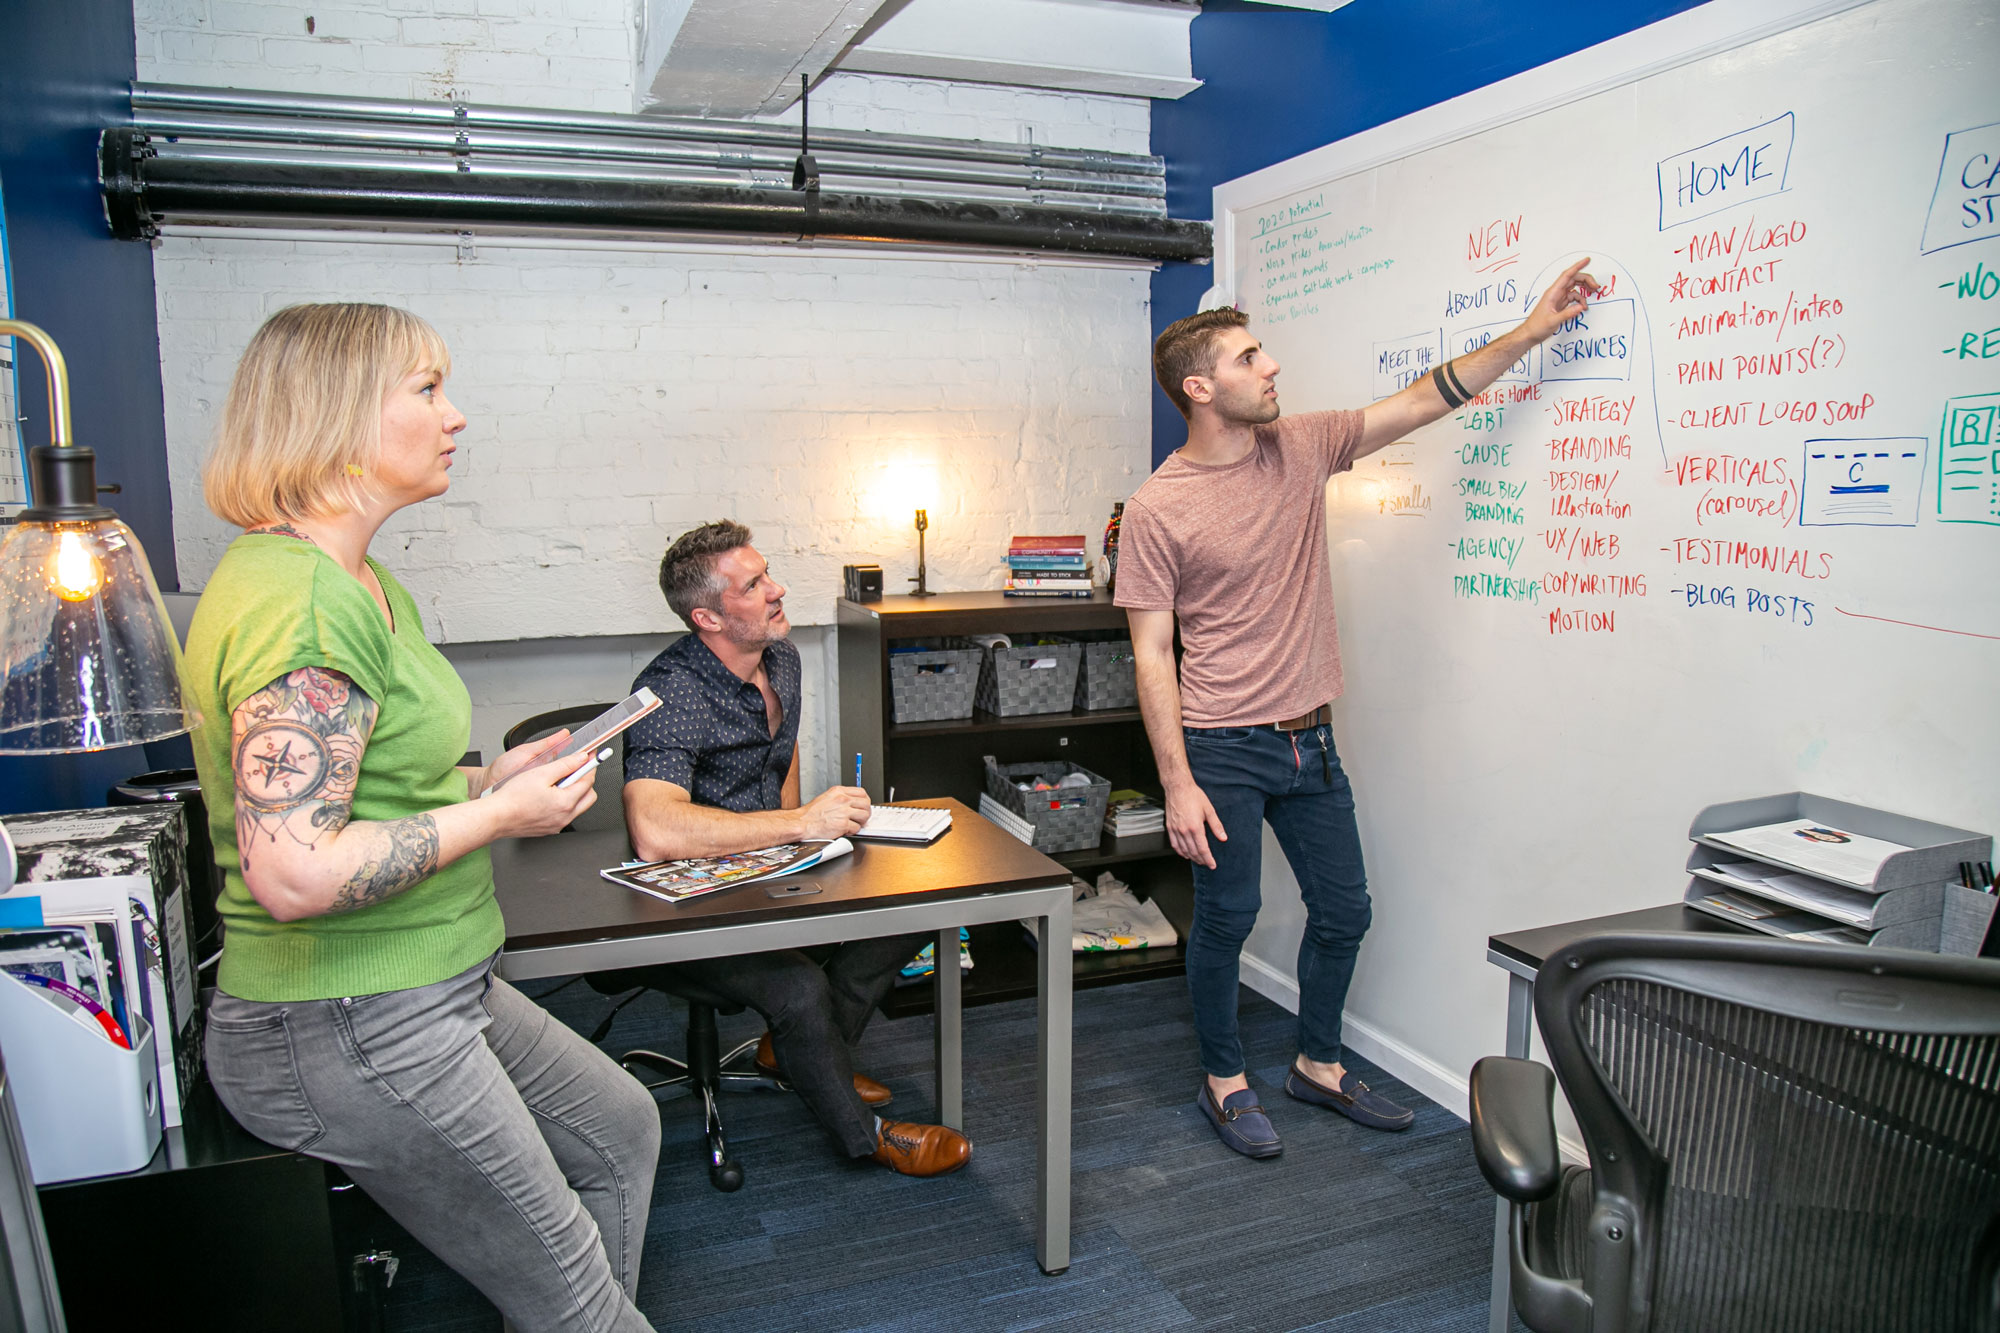 Three People Brainstorming With a Whiteboard